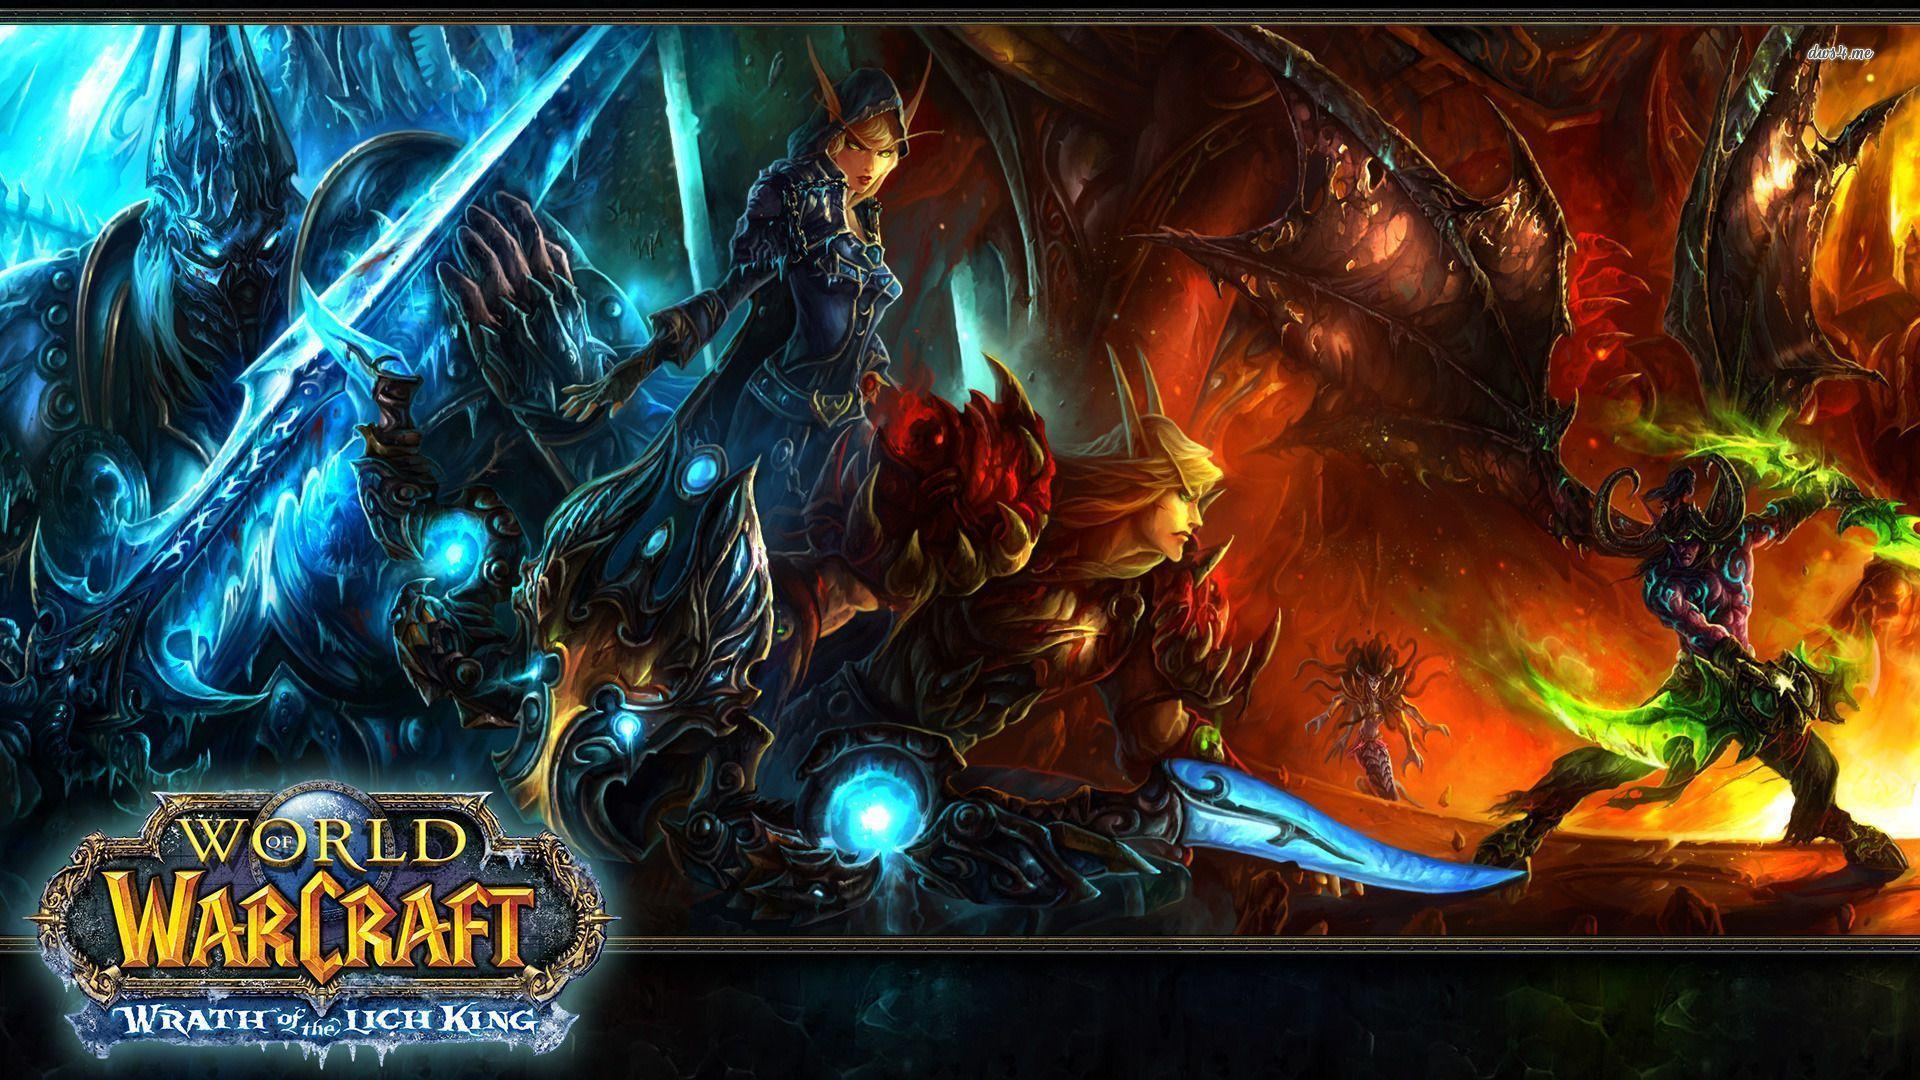 World of Warcraft - Wrath of the Lich King wallpaper - Game ...